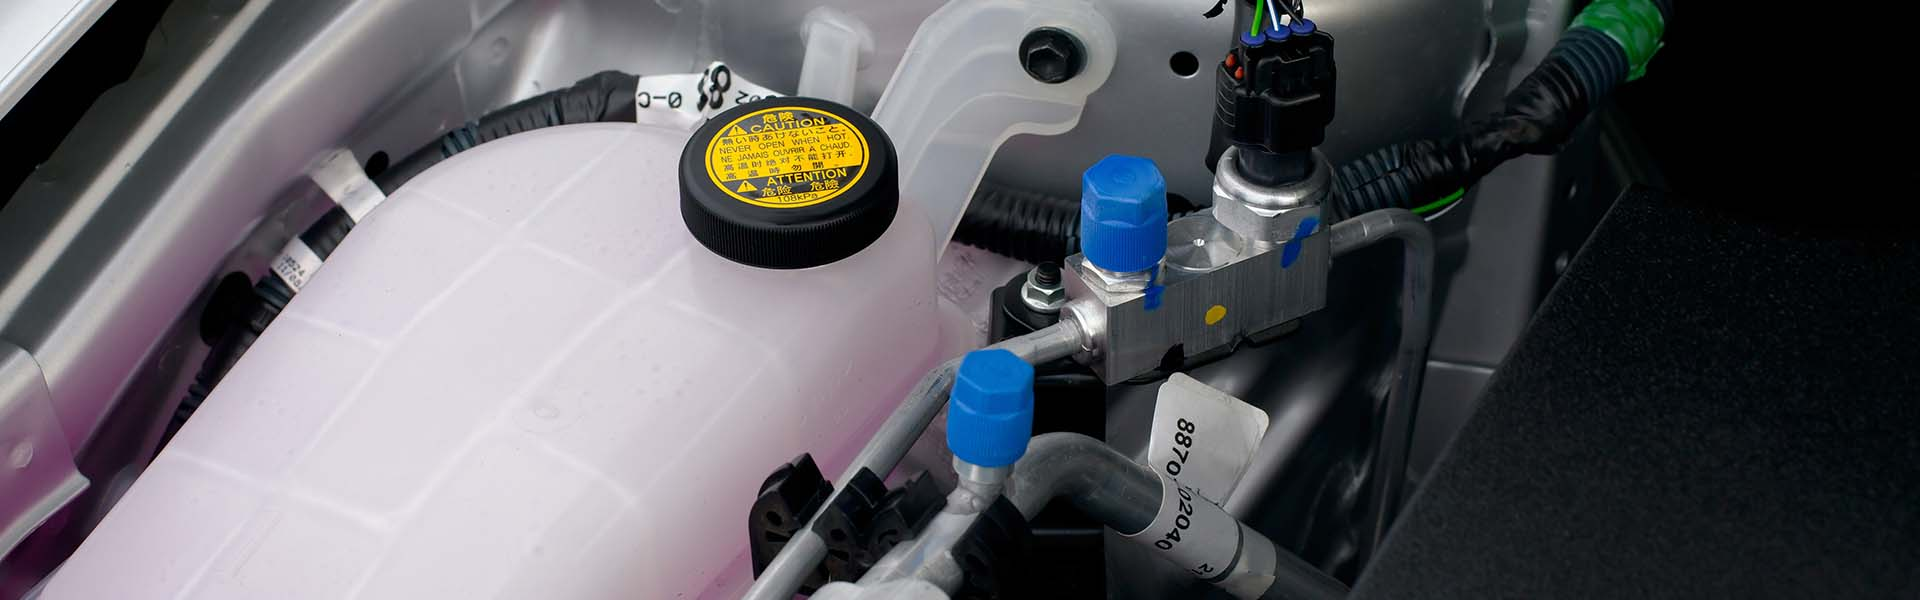 Coolant container in a car's engine bay